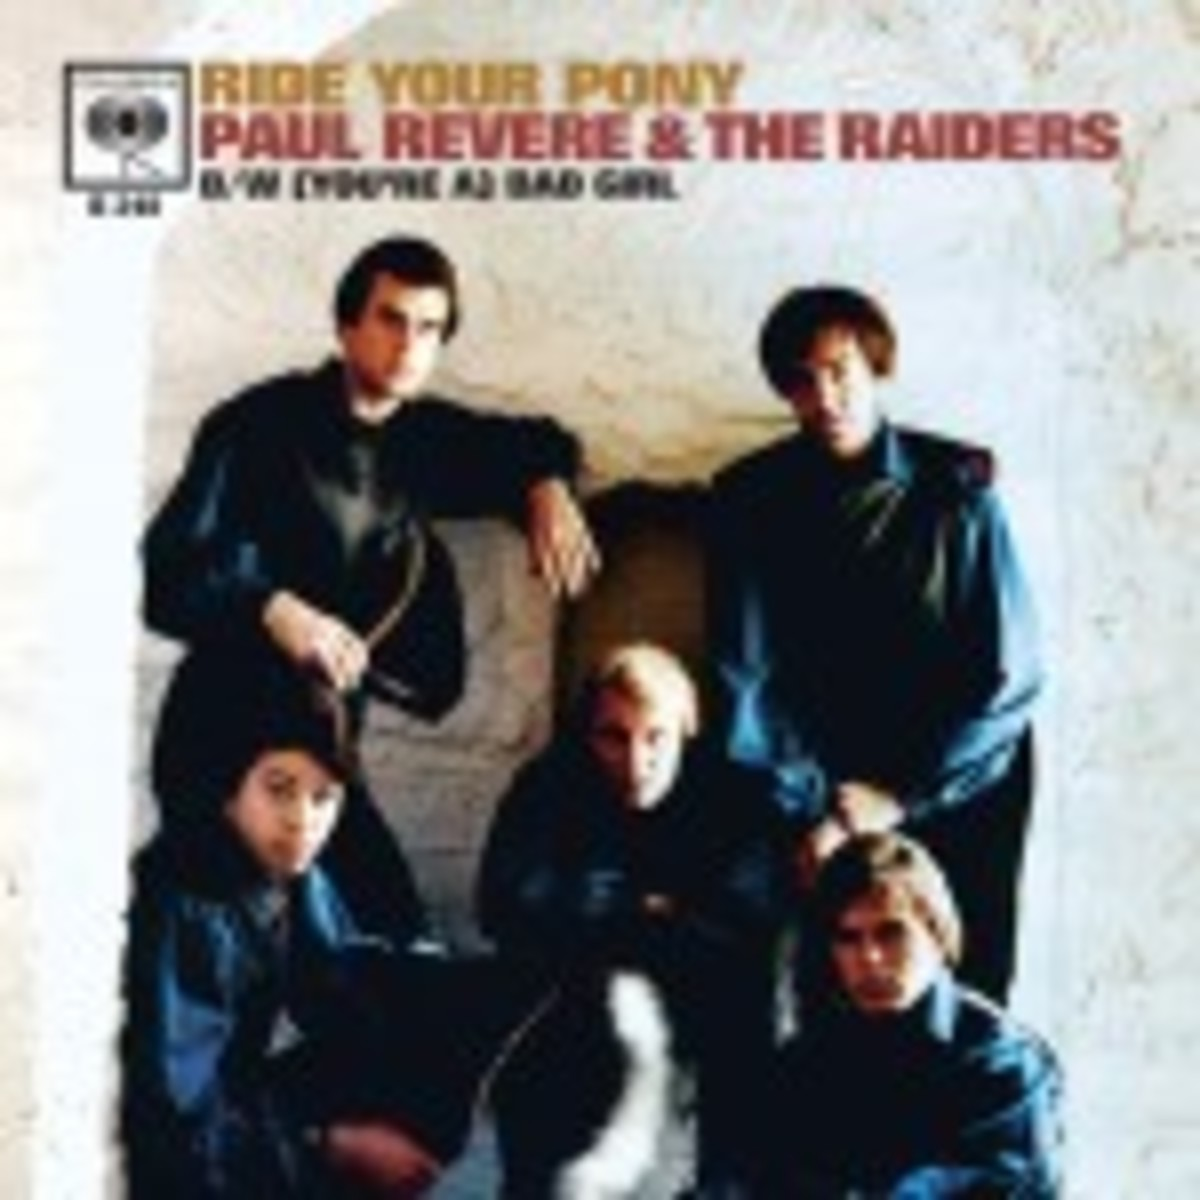 Paul Revere and The Raiders Record Store Day single